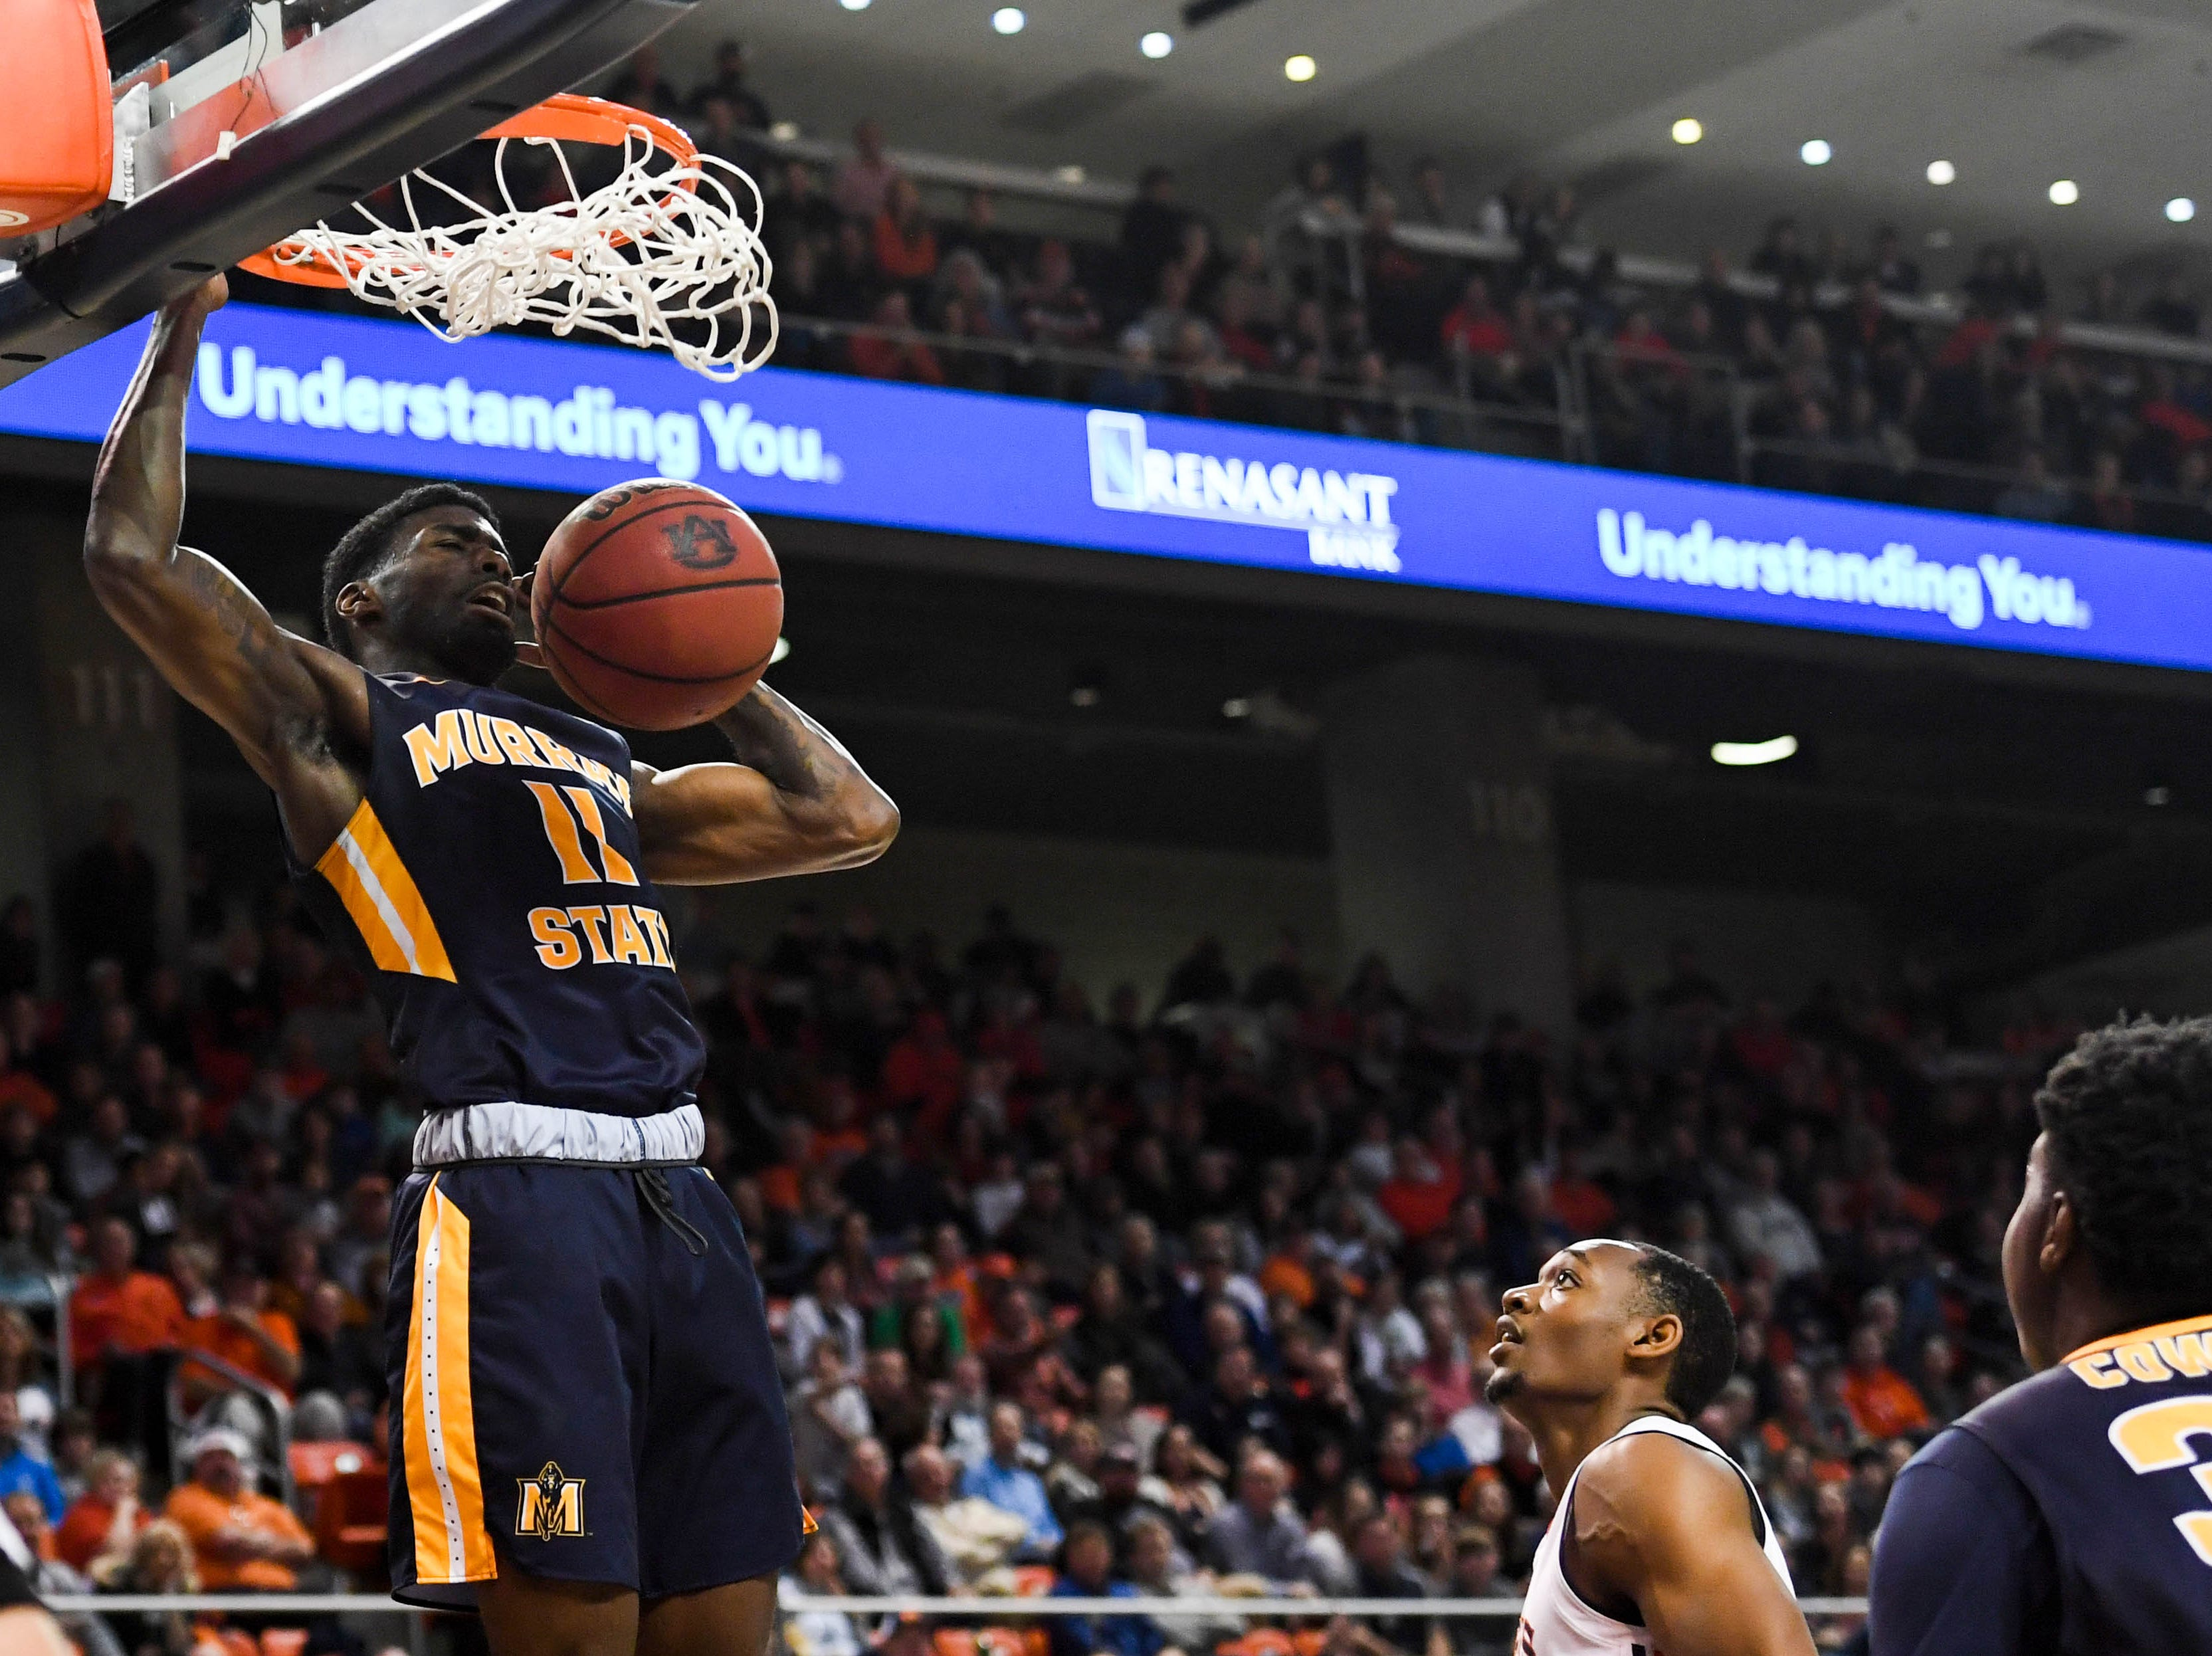 Dec 22, 2018; Auburn, AL, USA; Murray State Racers guard Shaq Buchanan (11) dunks as Auburn Tigers center Austin Wiley (50) looks on alongside Murray State Racers forward Darnell Cowart (32) during the first half at Auburn Arena. Mandatory Credit: Shanna Lockwood-USA TODAY Sports